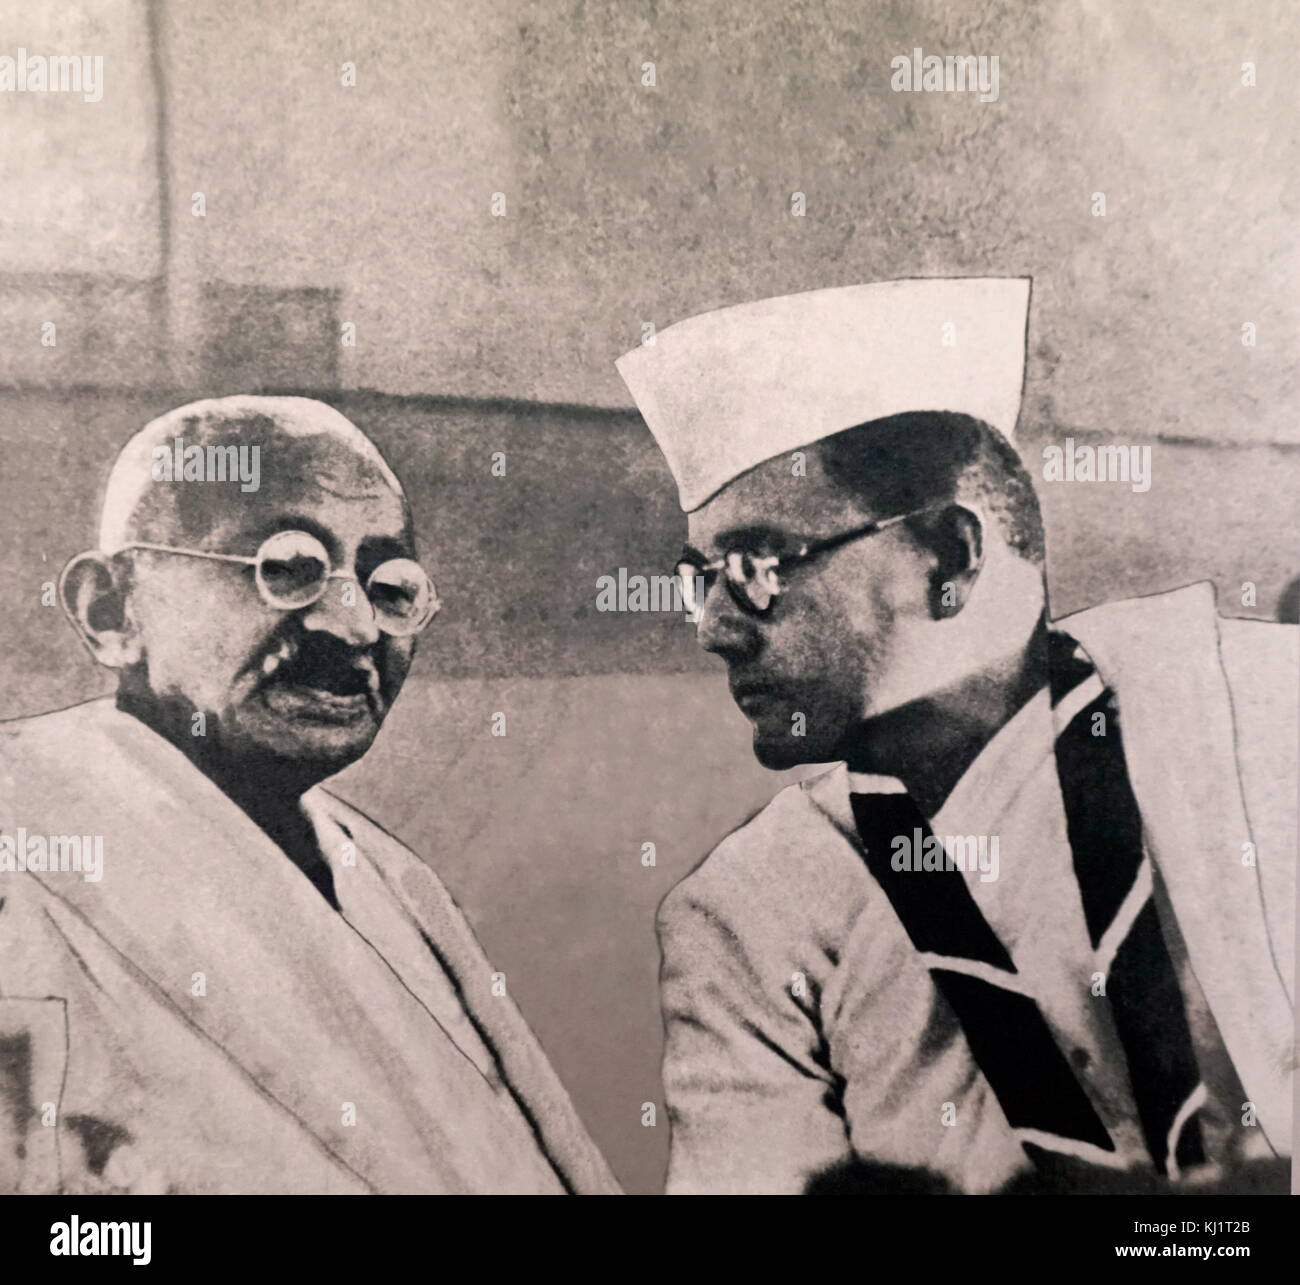 Mahatma Gandhi (left), campaigner for Indian independence, speaks to Subhas Chandra Bose, in Haripura during the - Stock Image